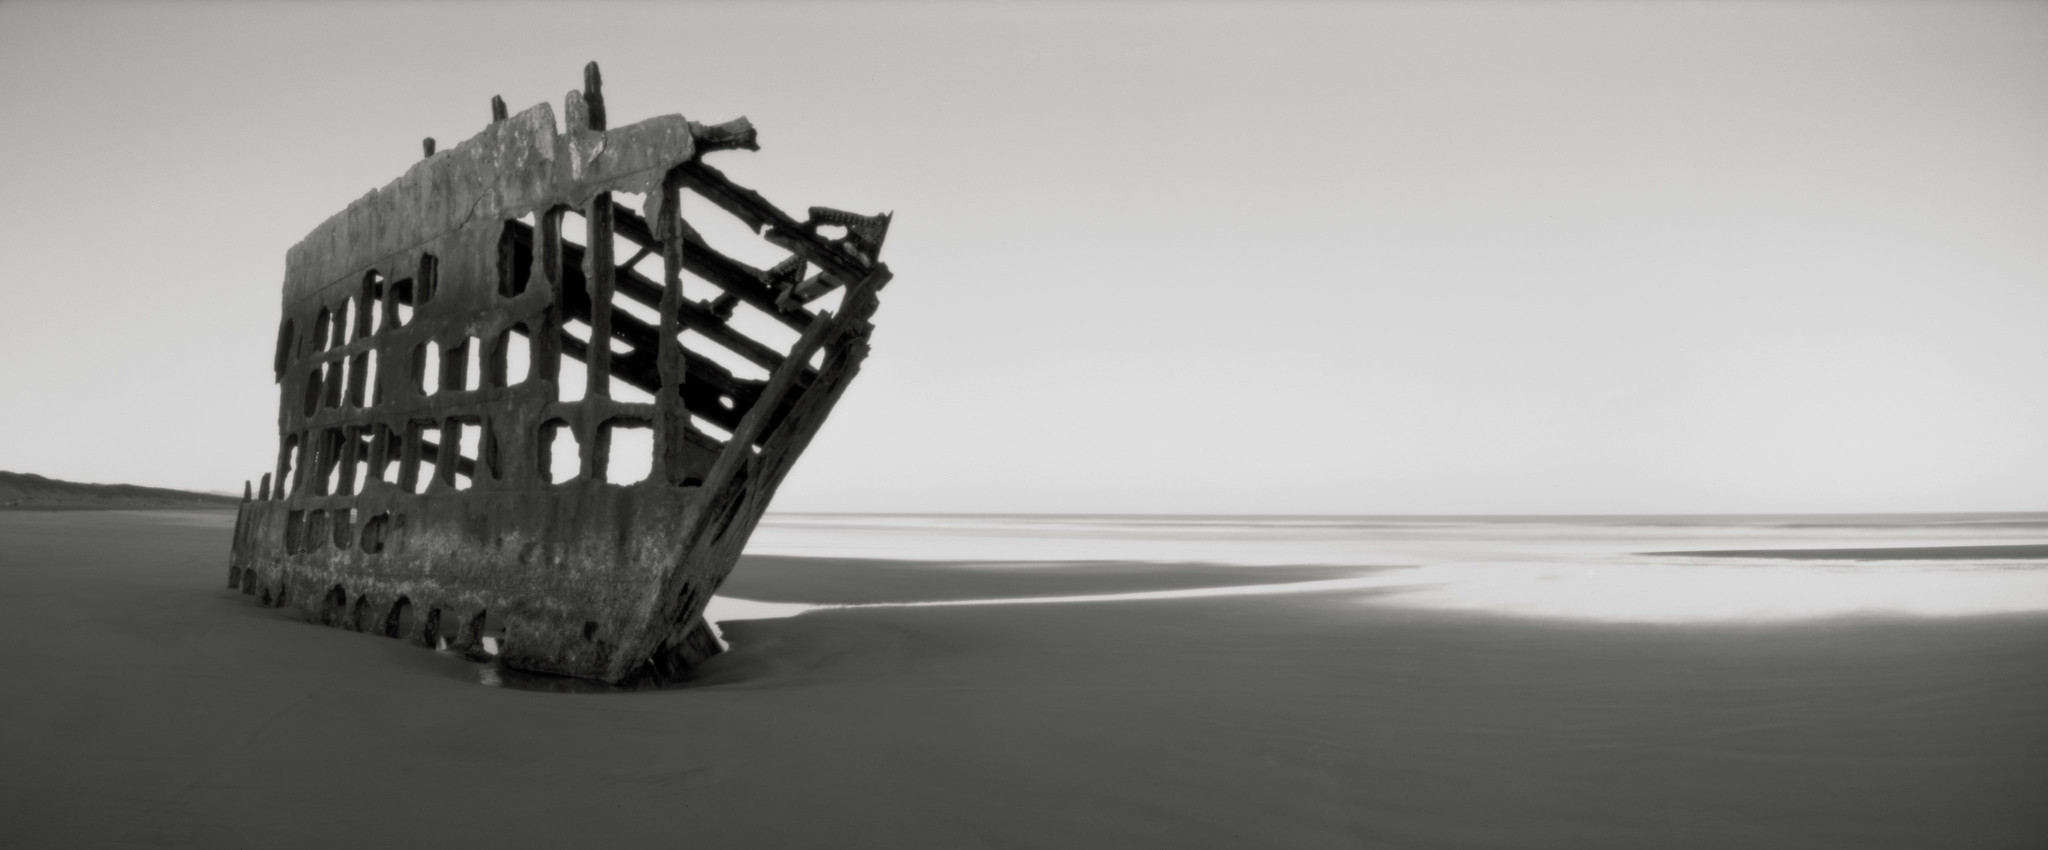 The Wreck of the Peter Iredale, Oregon Coast